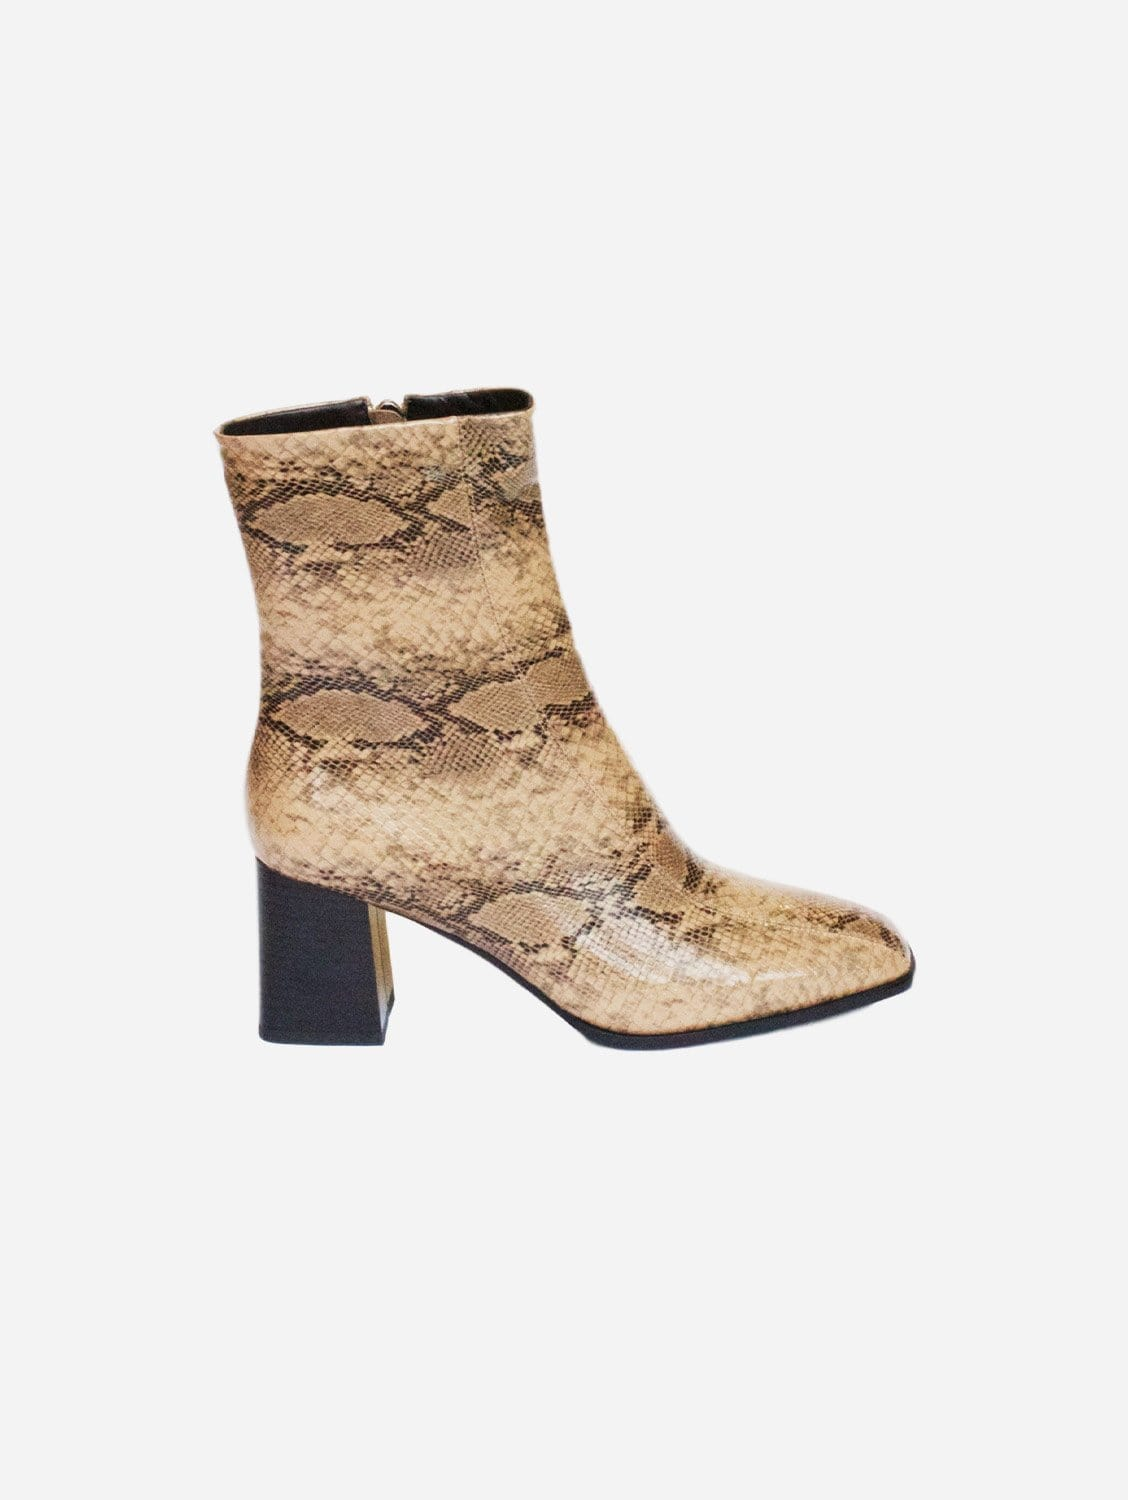 Roka Up-Cycled Vegan Leather Boot | Brown Snake